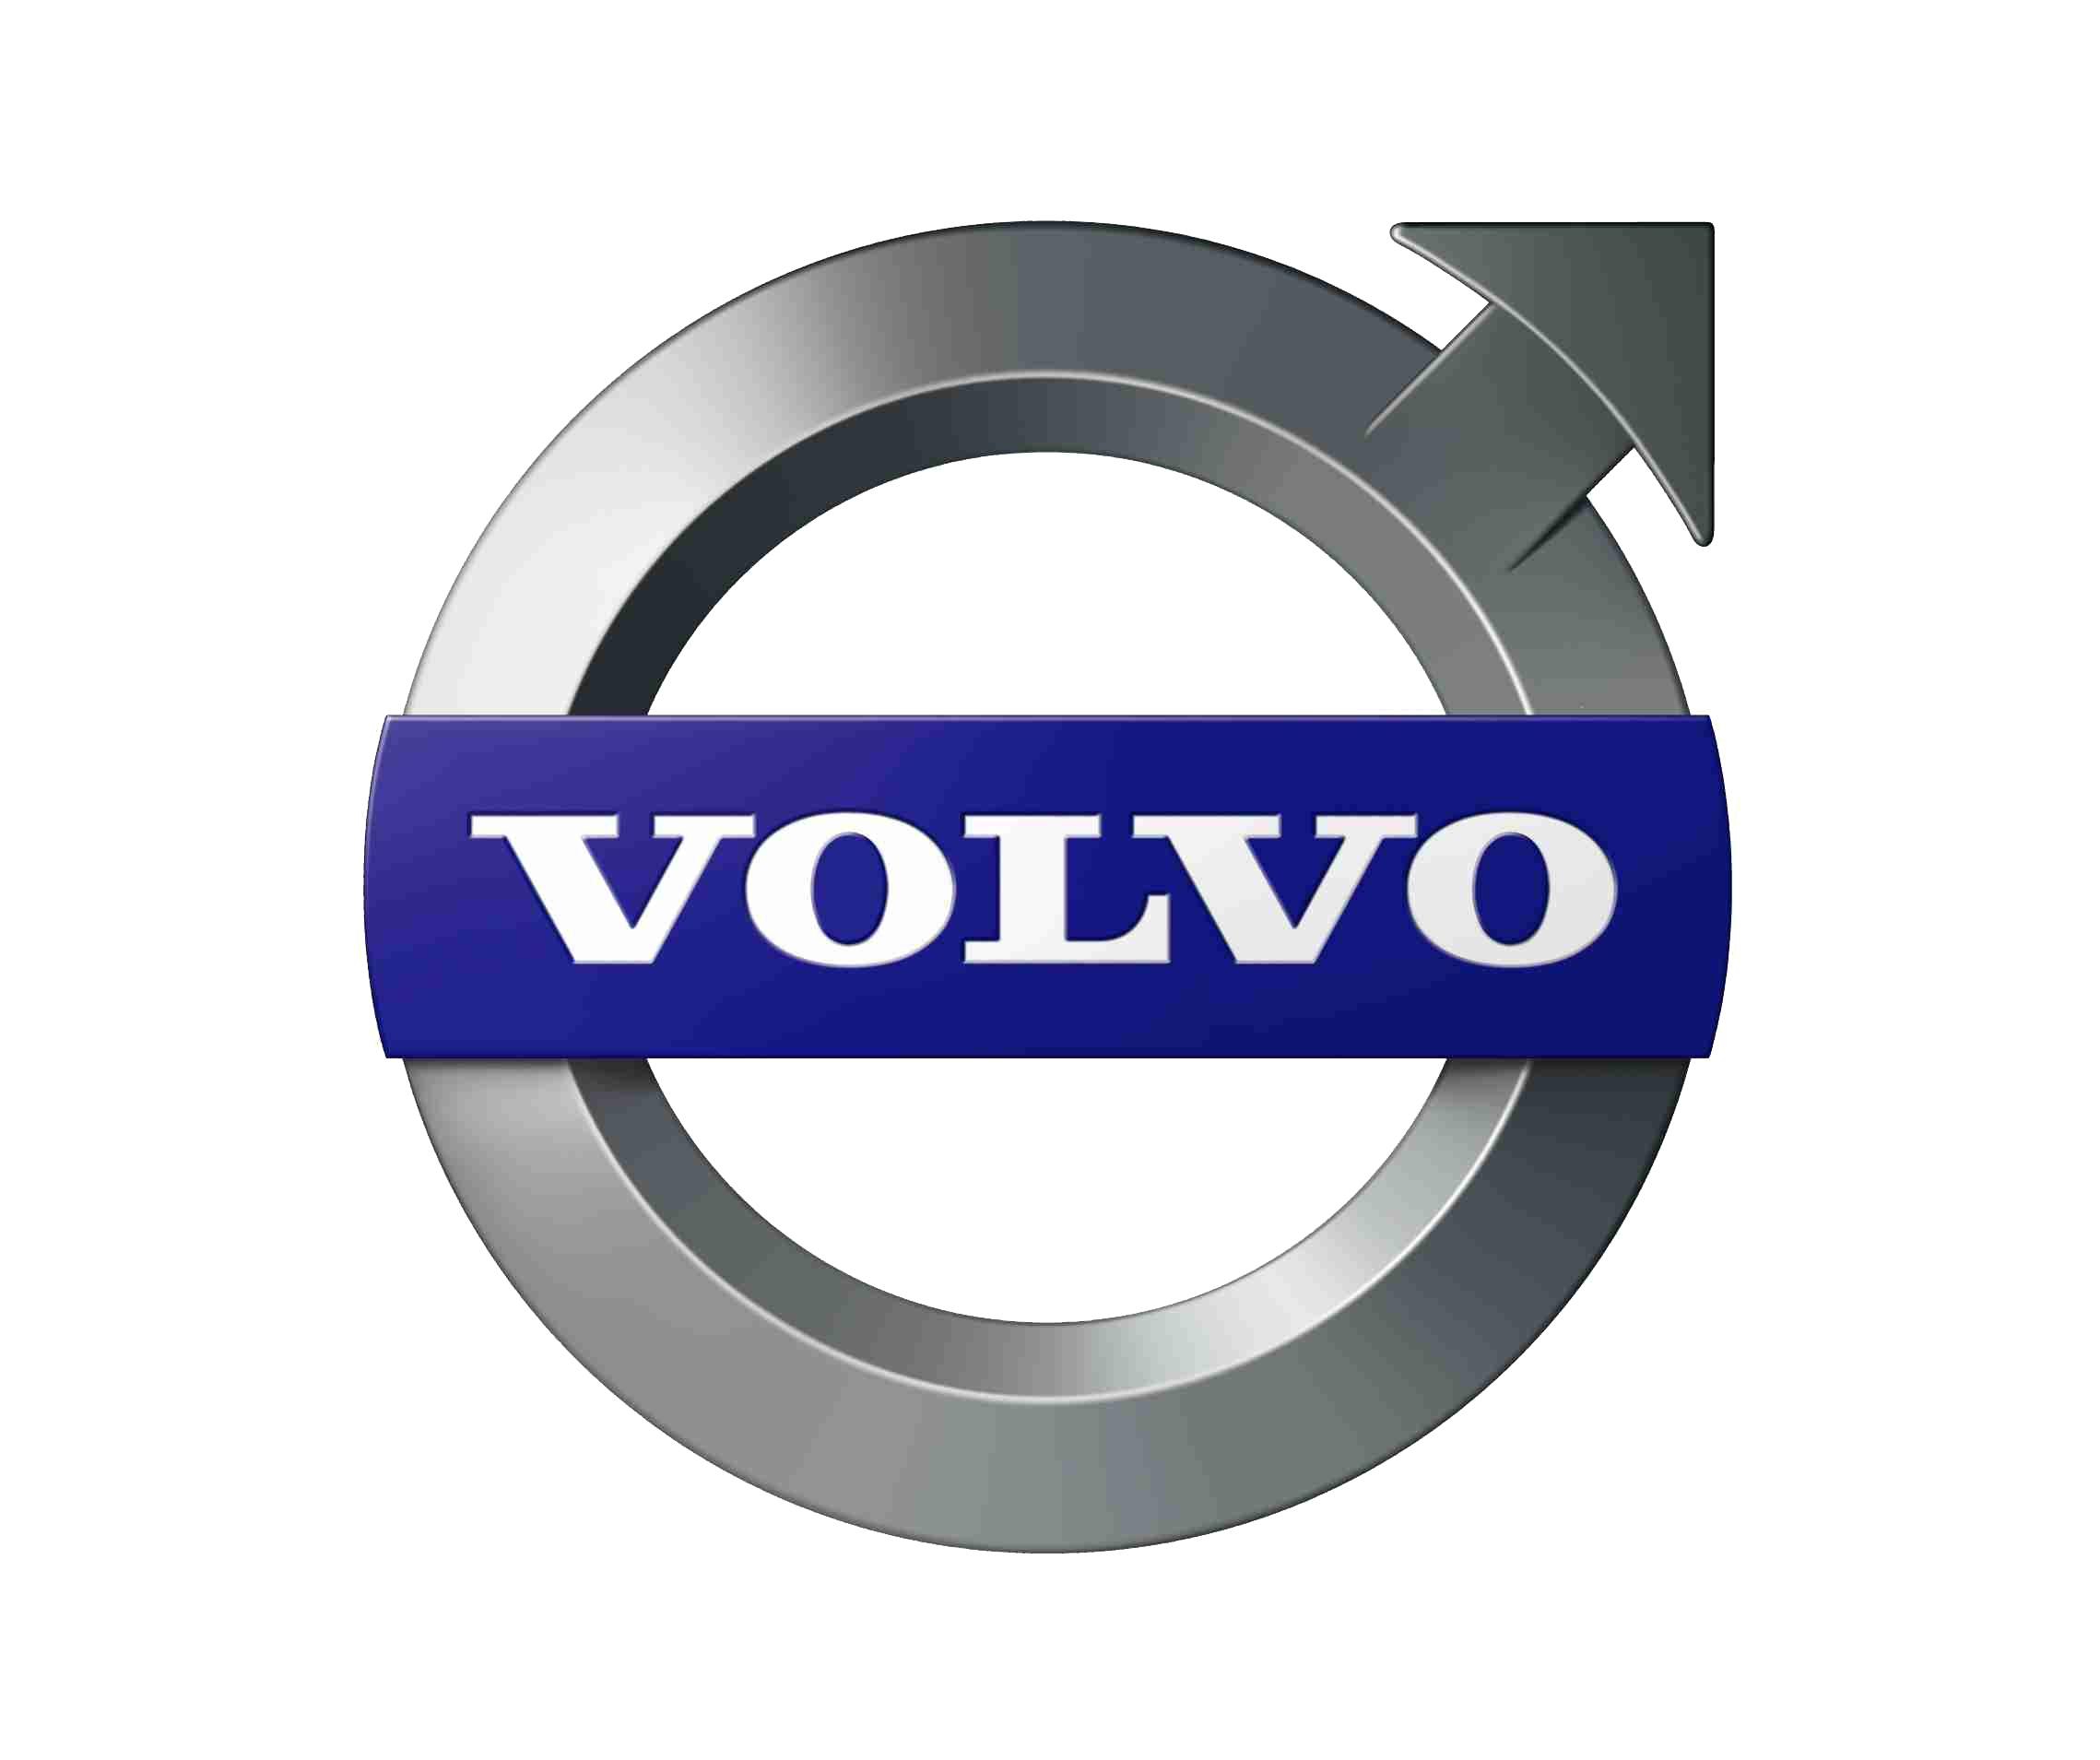 Cars logo brands images. Car company logos png graphic free stock